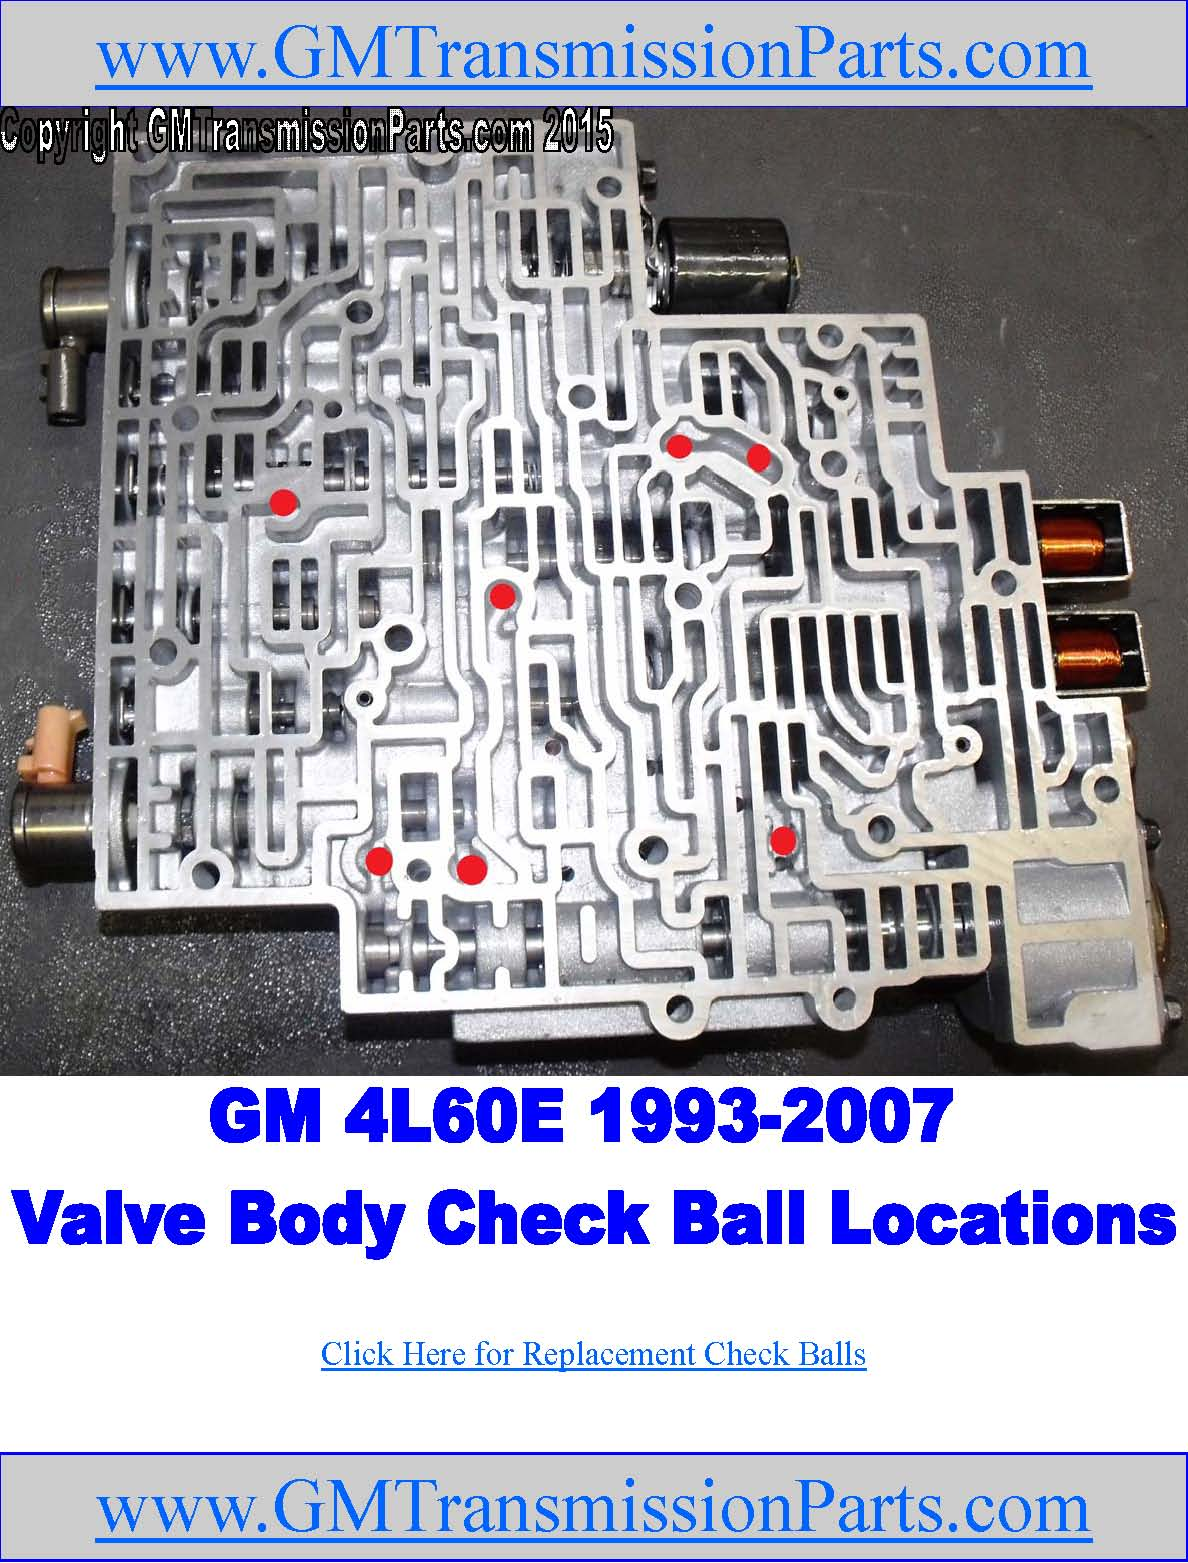 valve-body-check-ball-locations.jpg